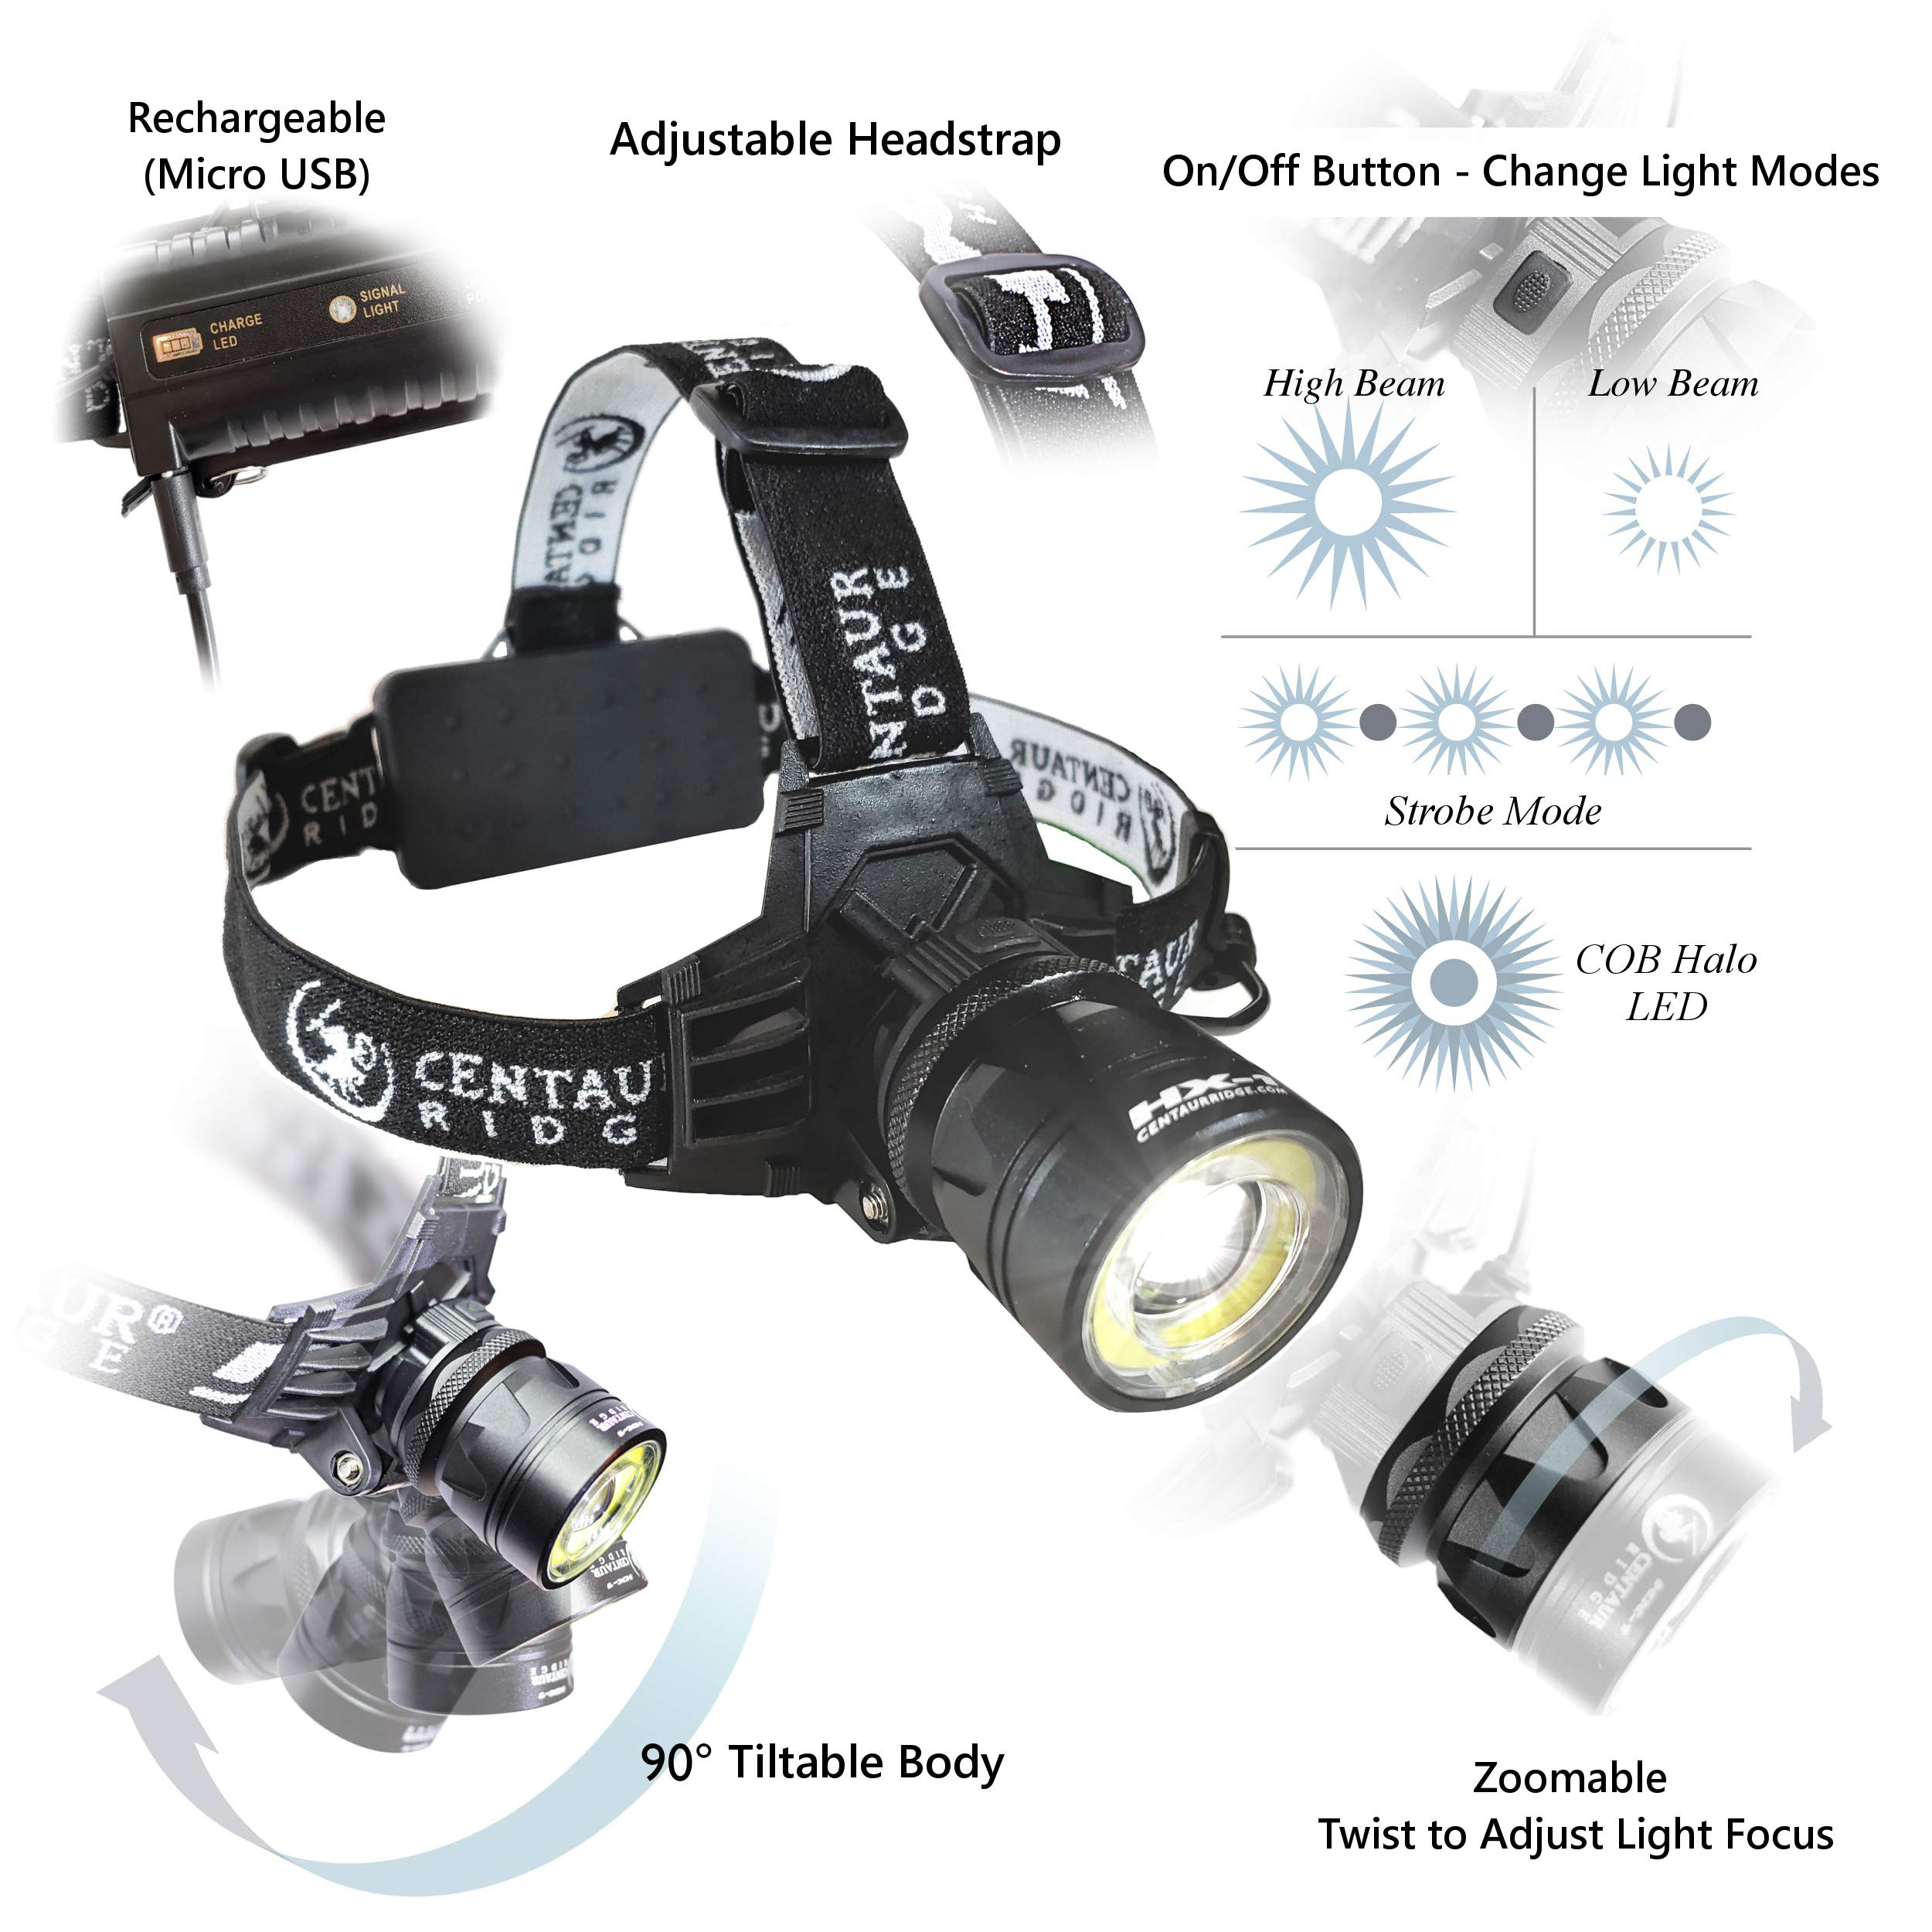 Centaur Ridge Headlamp - Xtreme Bright, 1000 Lumen CREE LED, Zoomable, USB Rechargeable | Best Flashlight for Camping, Hiking, Running, Work by Centaur Ridge (Image #4)